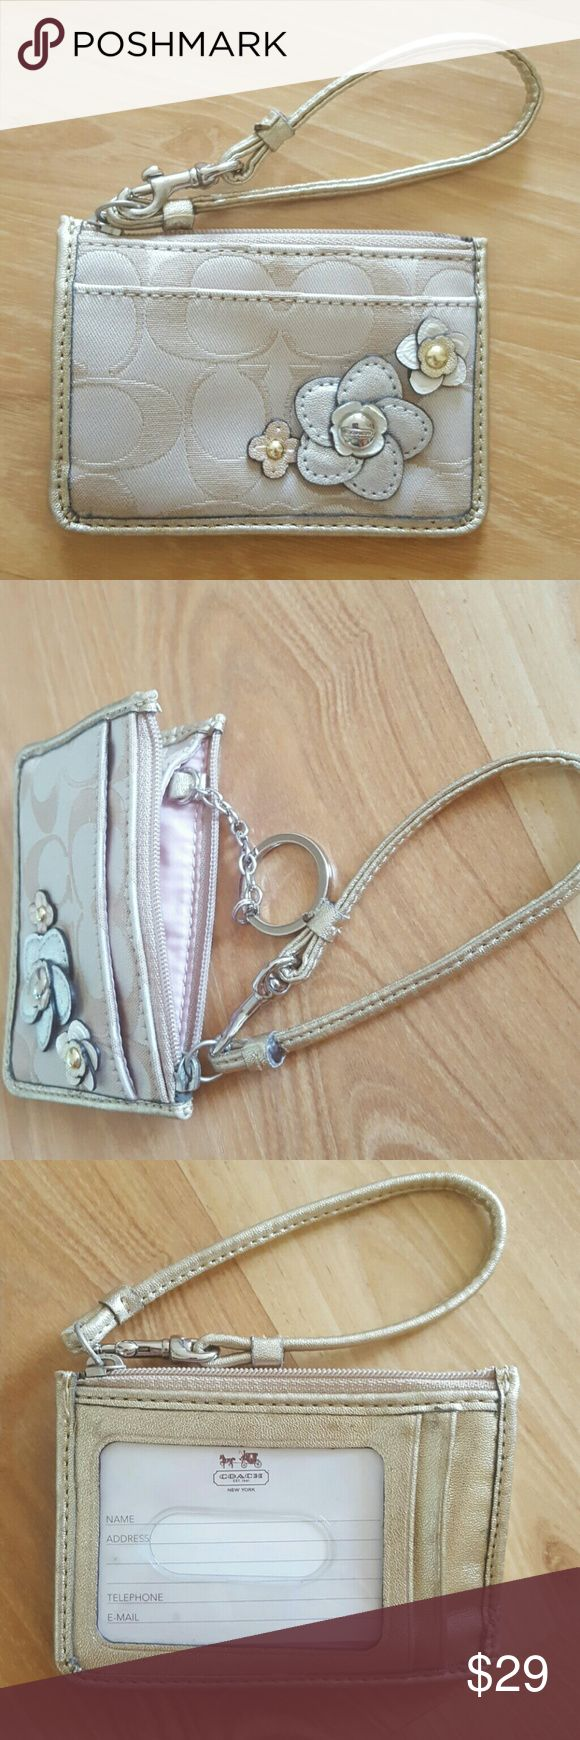 Coach coin pouch with key chain Perfect for a quick trip to the store or for travel. Easily access your ID & c-cards. Used less than a hand full of times. Leather of petal is lifting (see last photo), otherwise in great condition. Offers welcome. Coach Bags Wallets